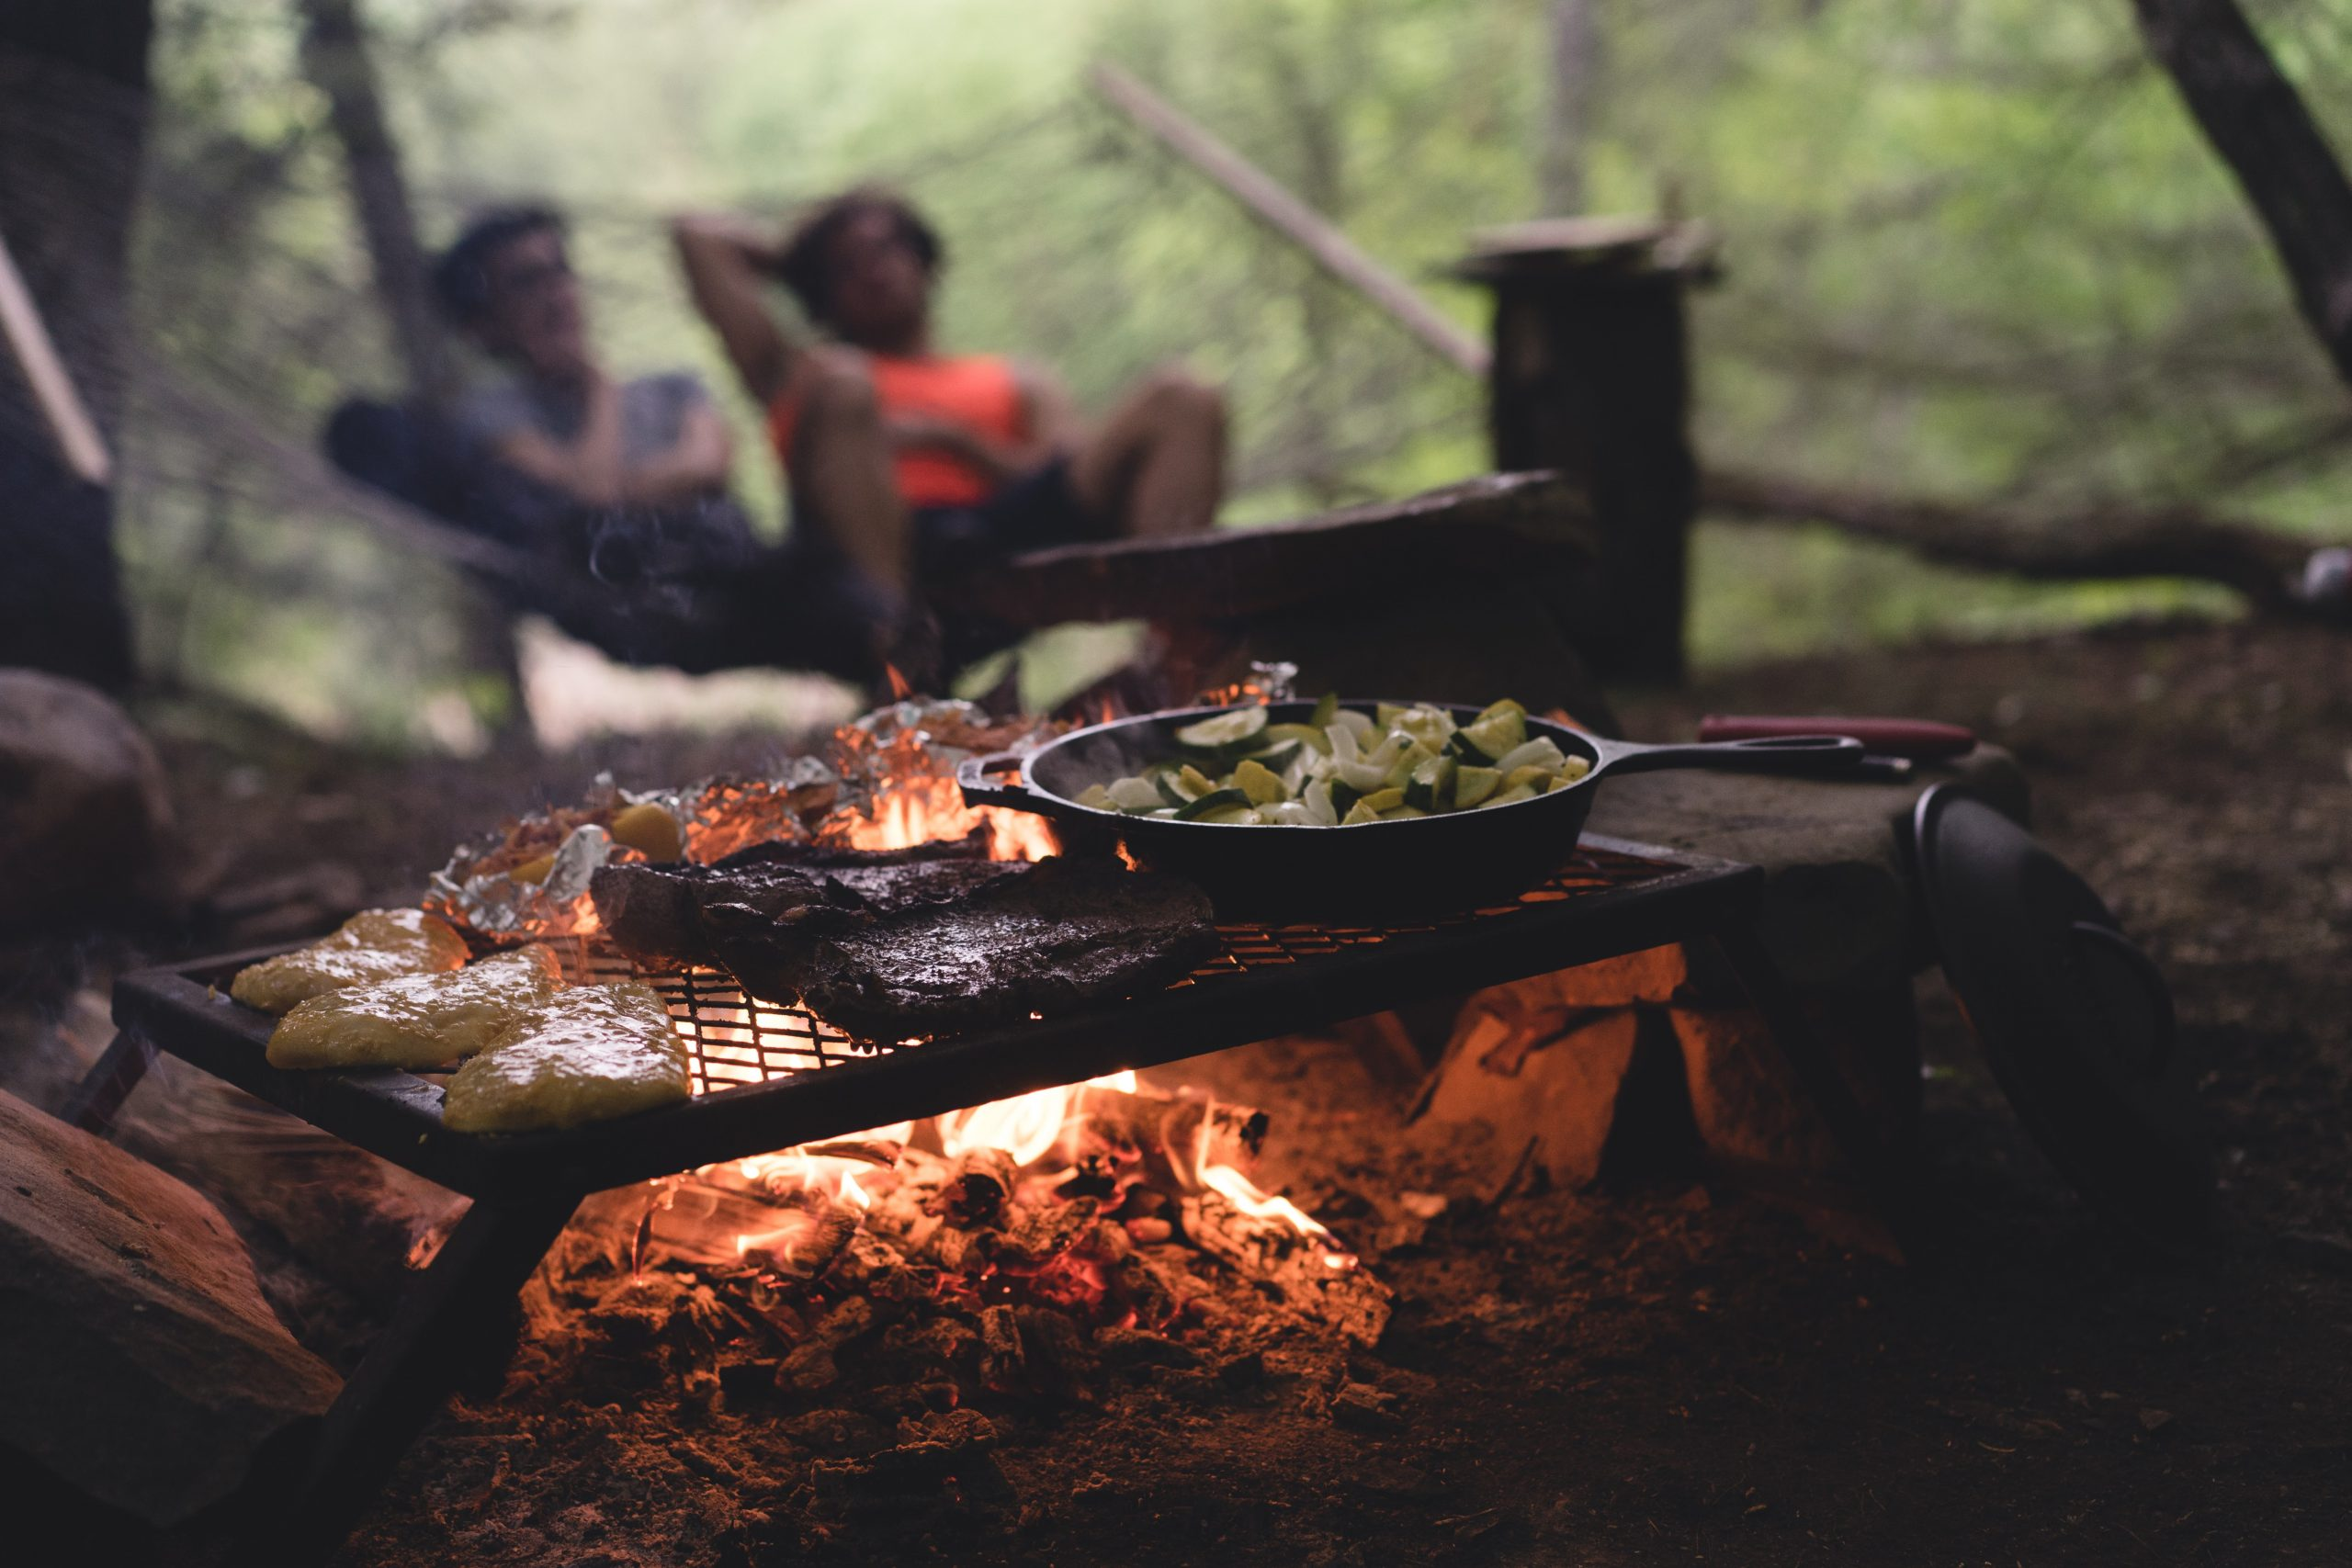 food cooks on a grill over a campfire